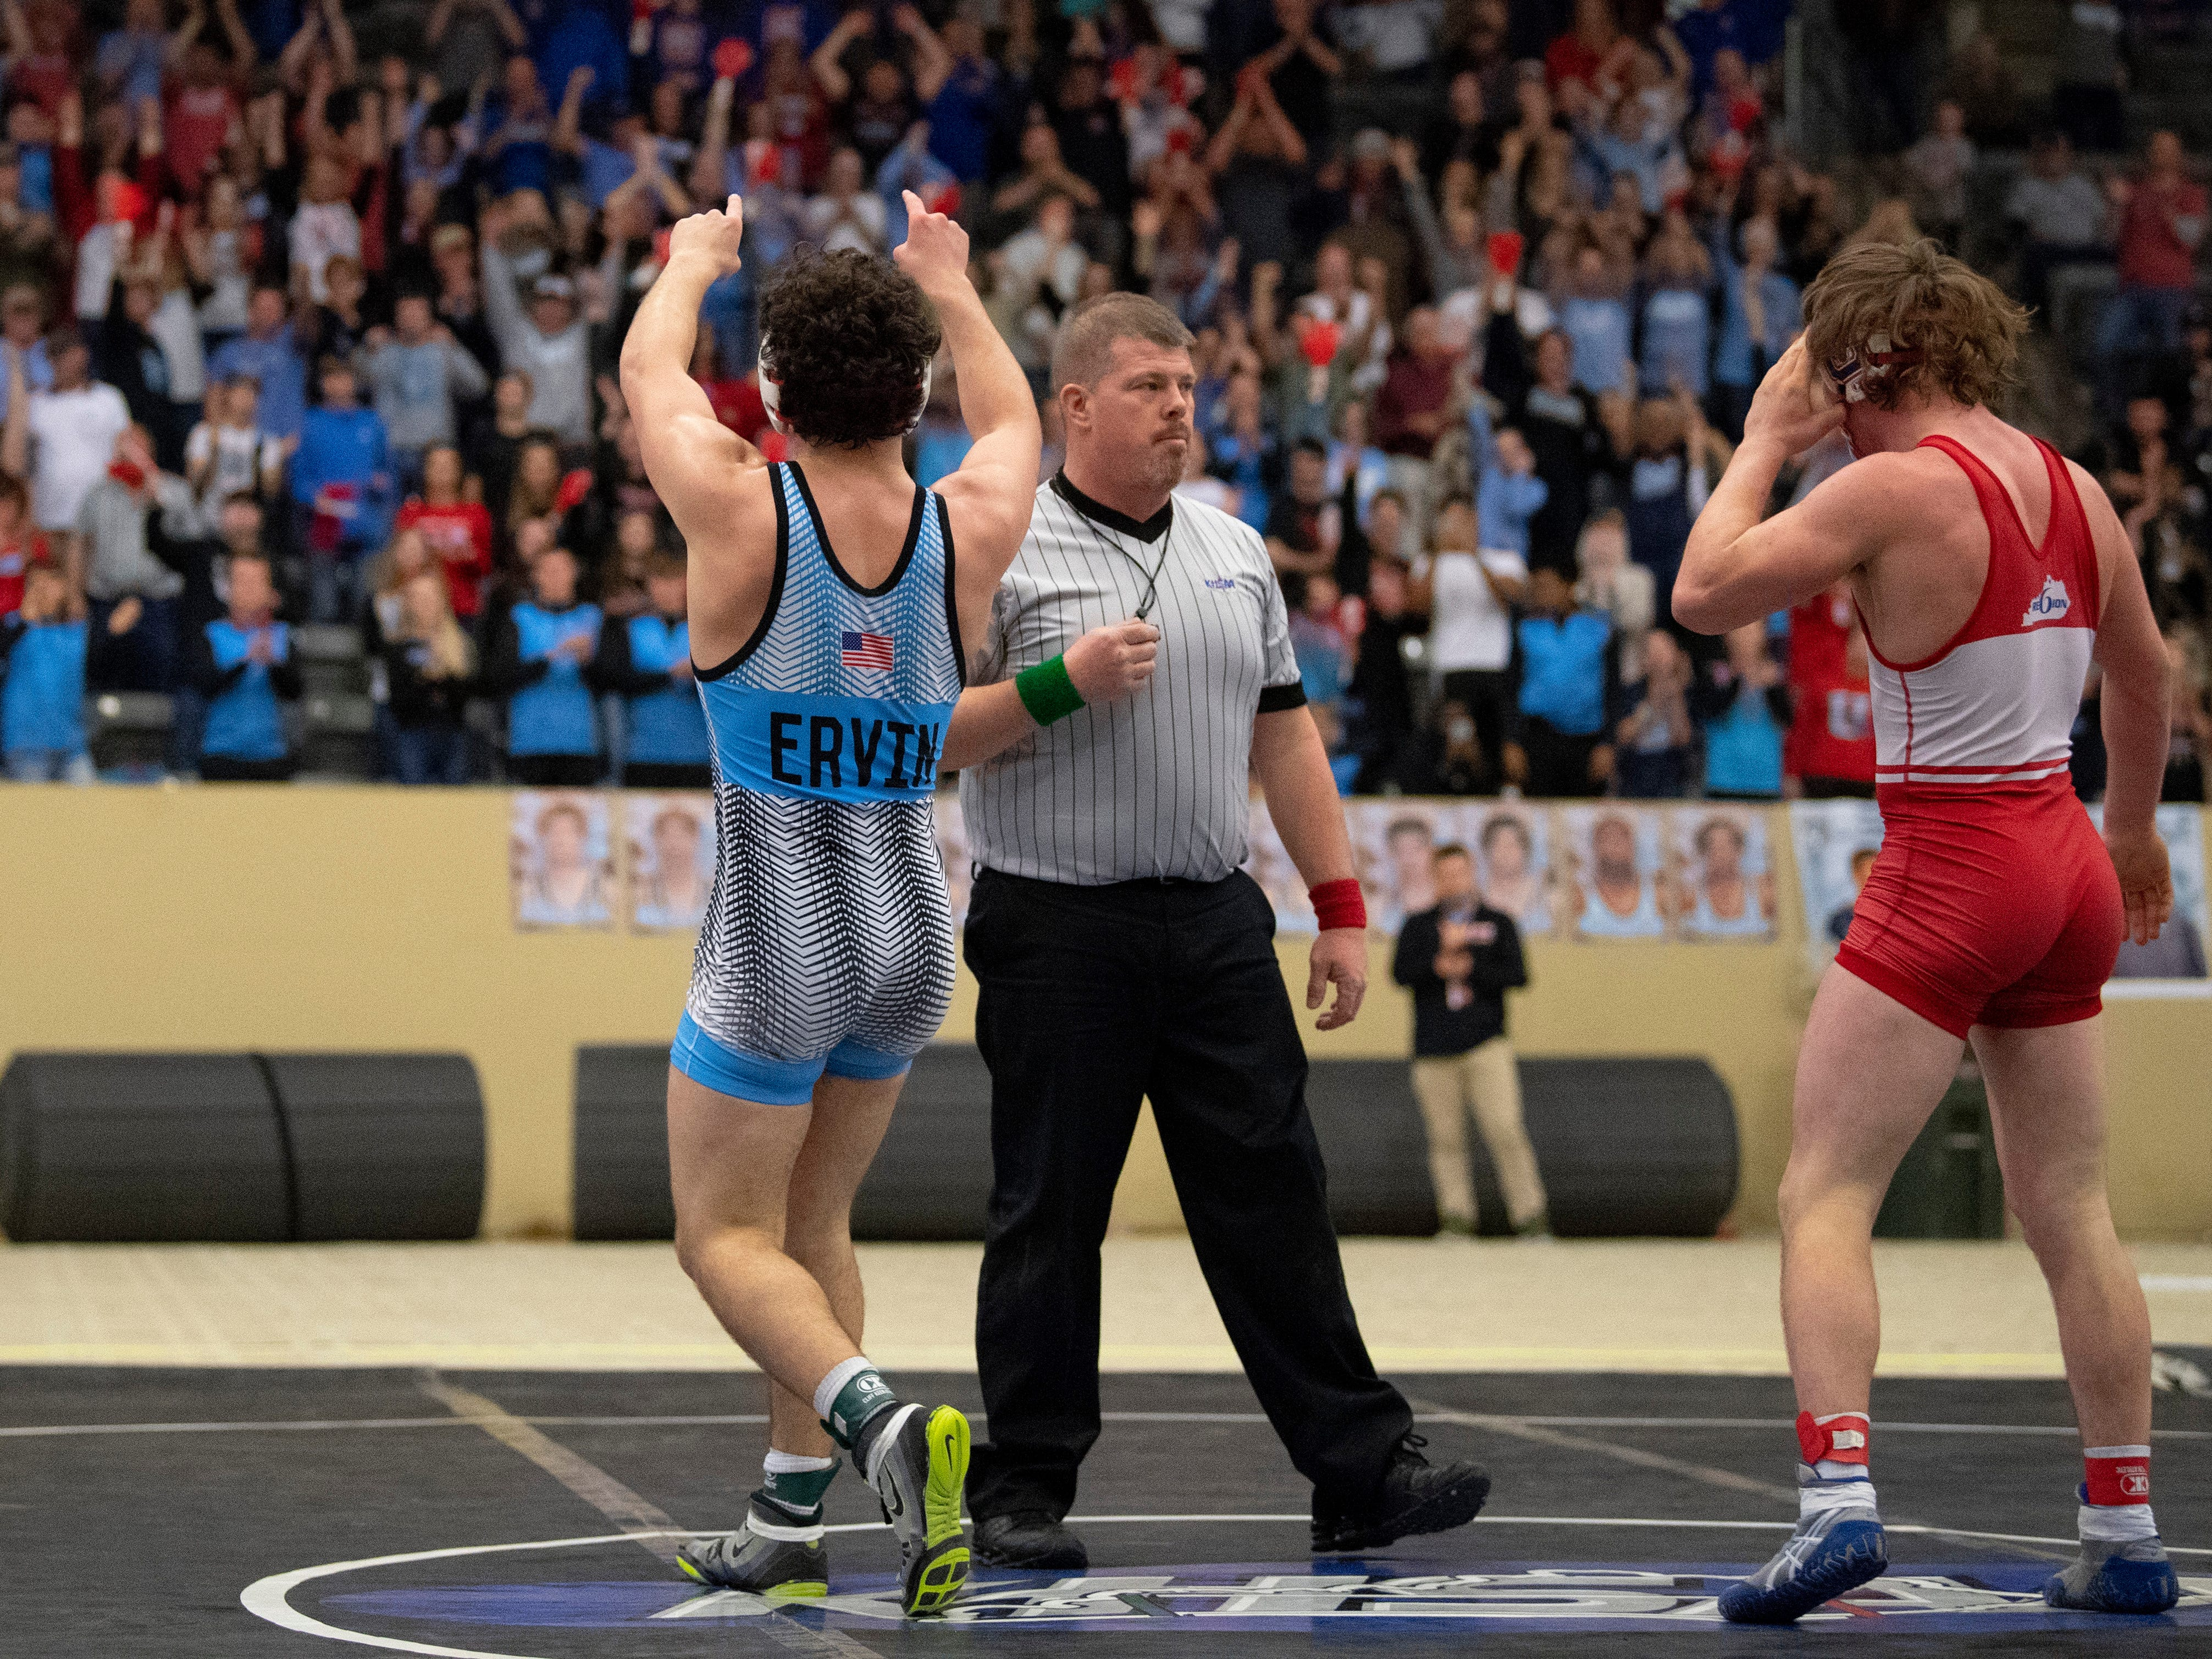 Union County's Micah Ervin celebrates his win over Conner's Clayton Boyd after their 170-pound championship match at the KHSAA State Wrestling Championships at the Alltech Arena in Lexington, Ky., Saturday afternoon. Ervin won the match with a 5-3 decision to take home the state championship.